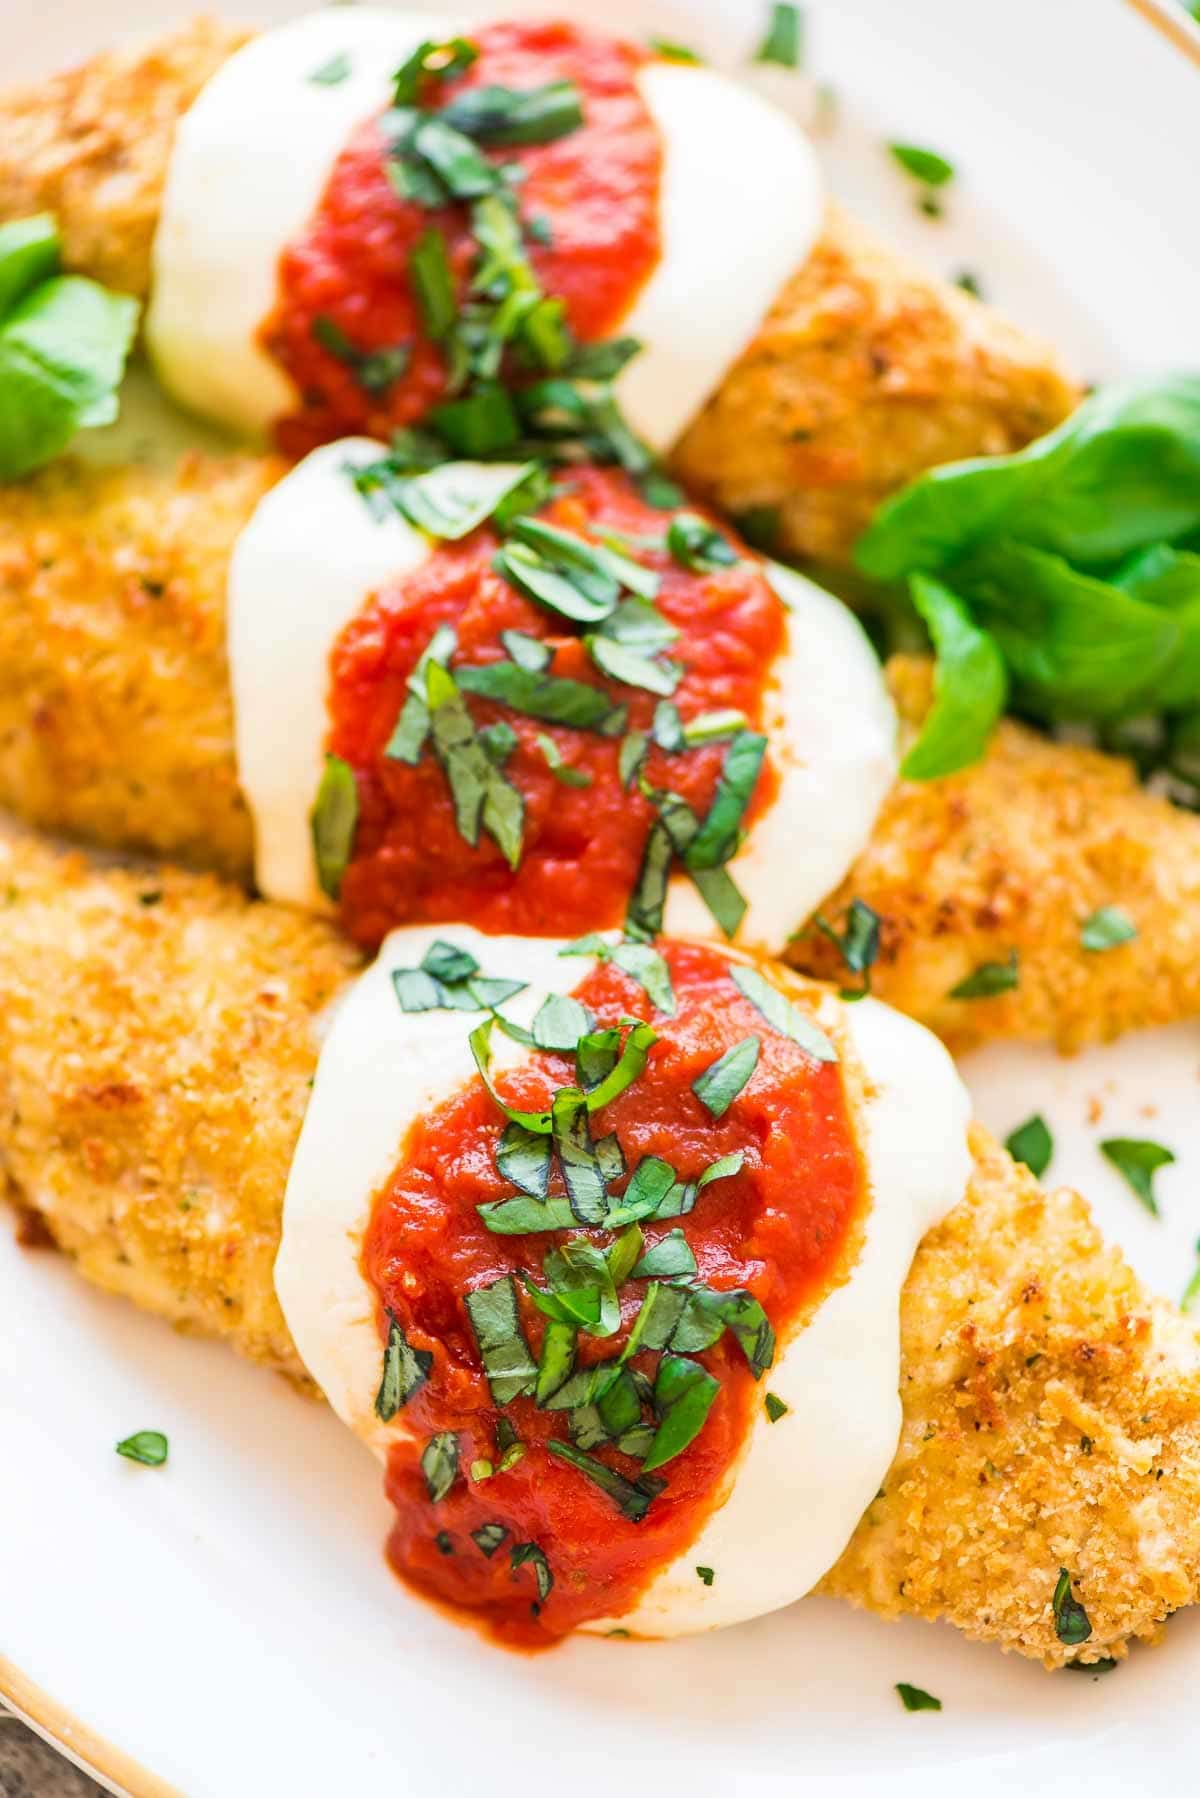 Healthy Baked Chicken Parmesan The Best Crispy On The Outside Juicy And Tender